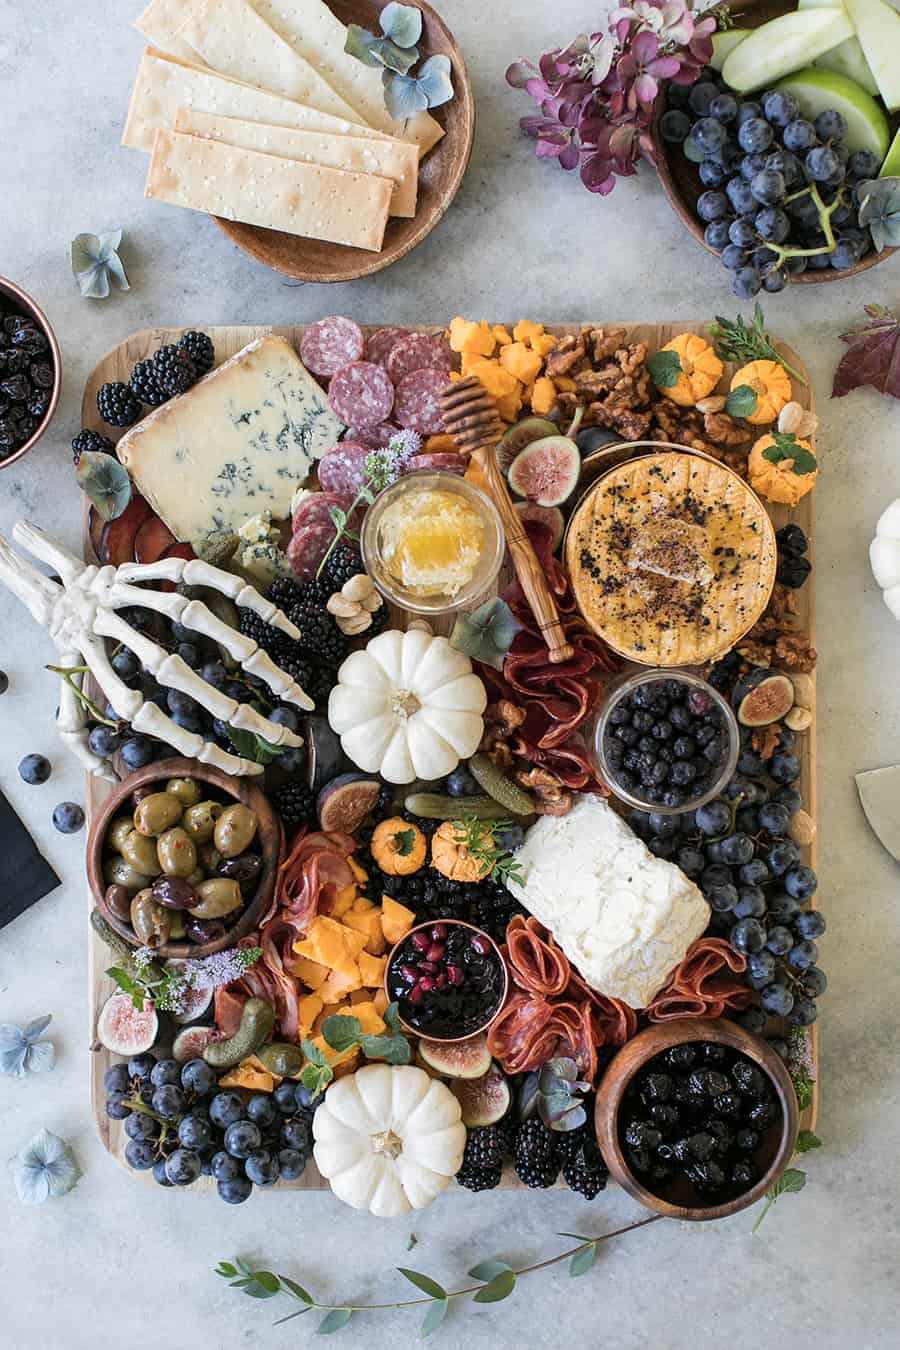 How To Make The Perfect Halloween Meat And Cheese Board Sugar And Charm